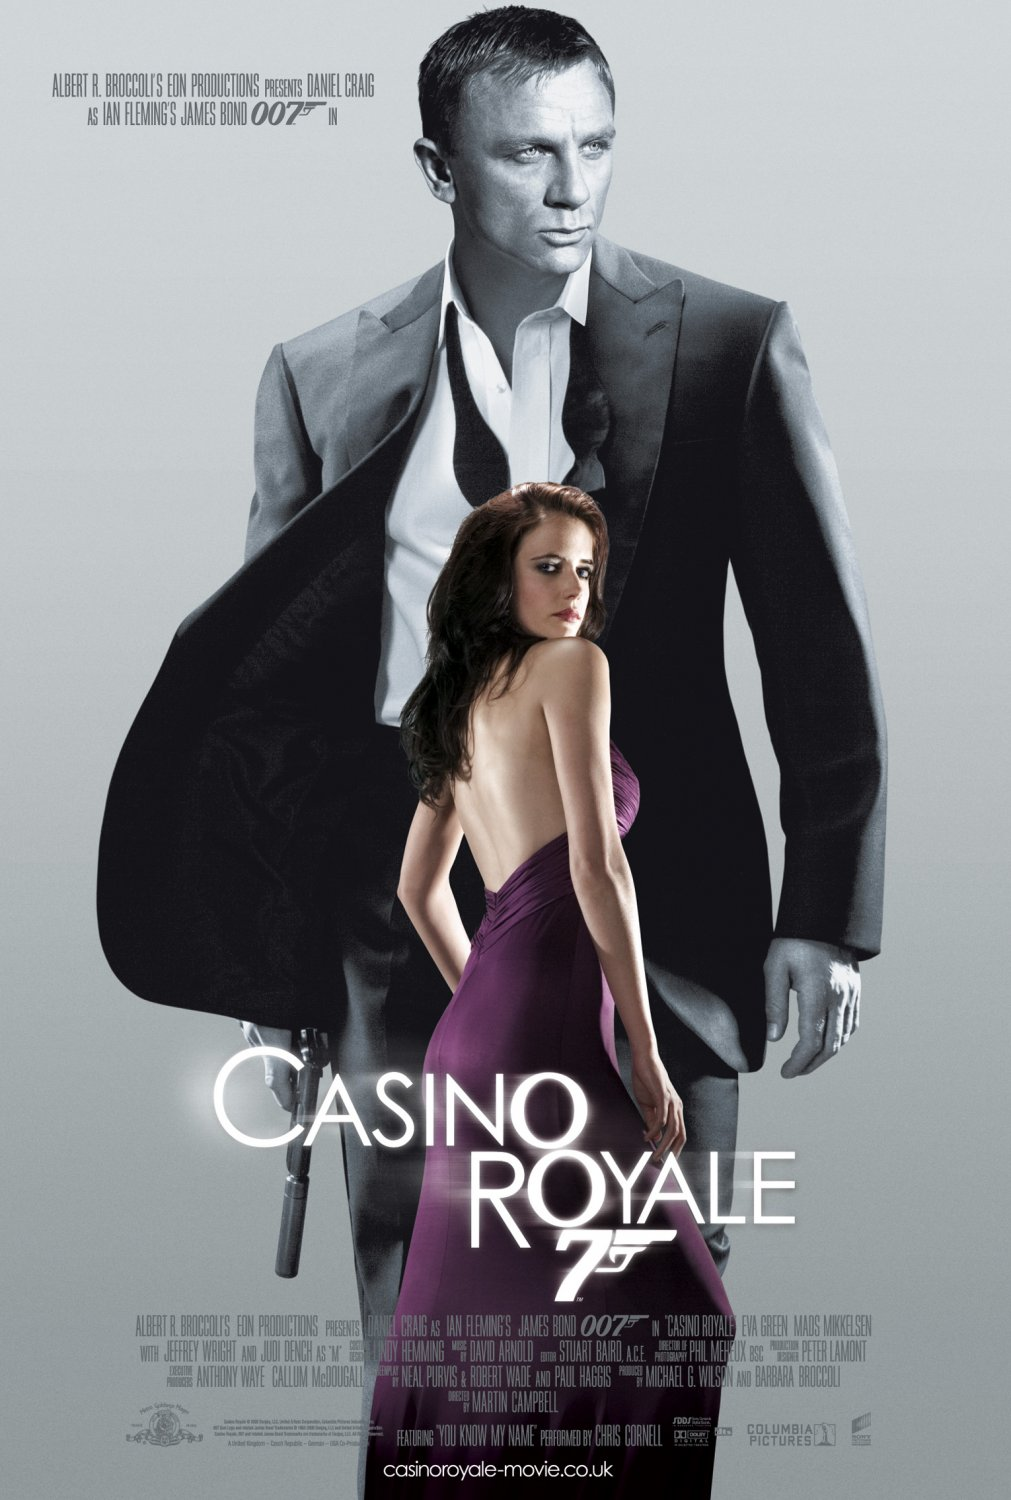 James bond casino royale release date louis theroux gambling in las vegas watch online